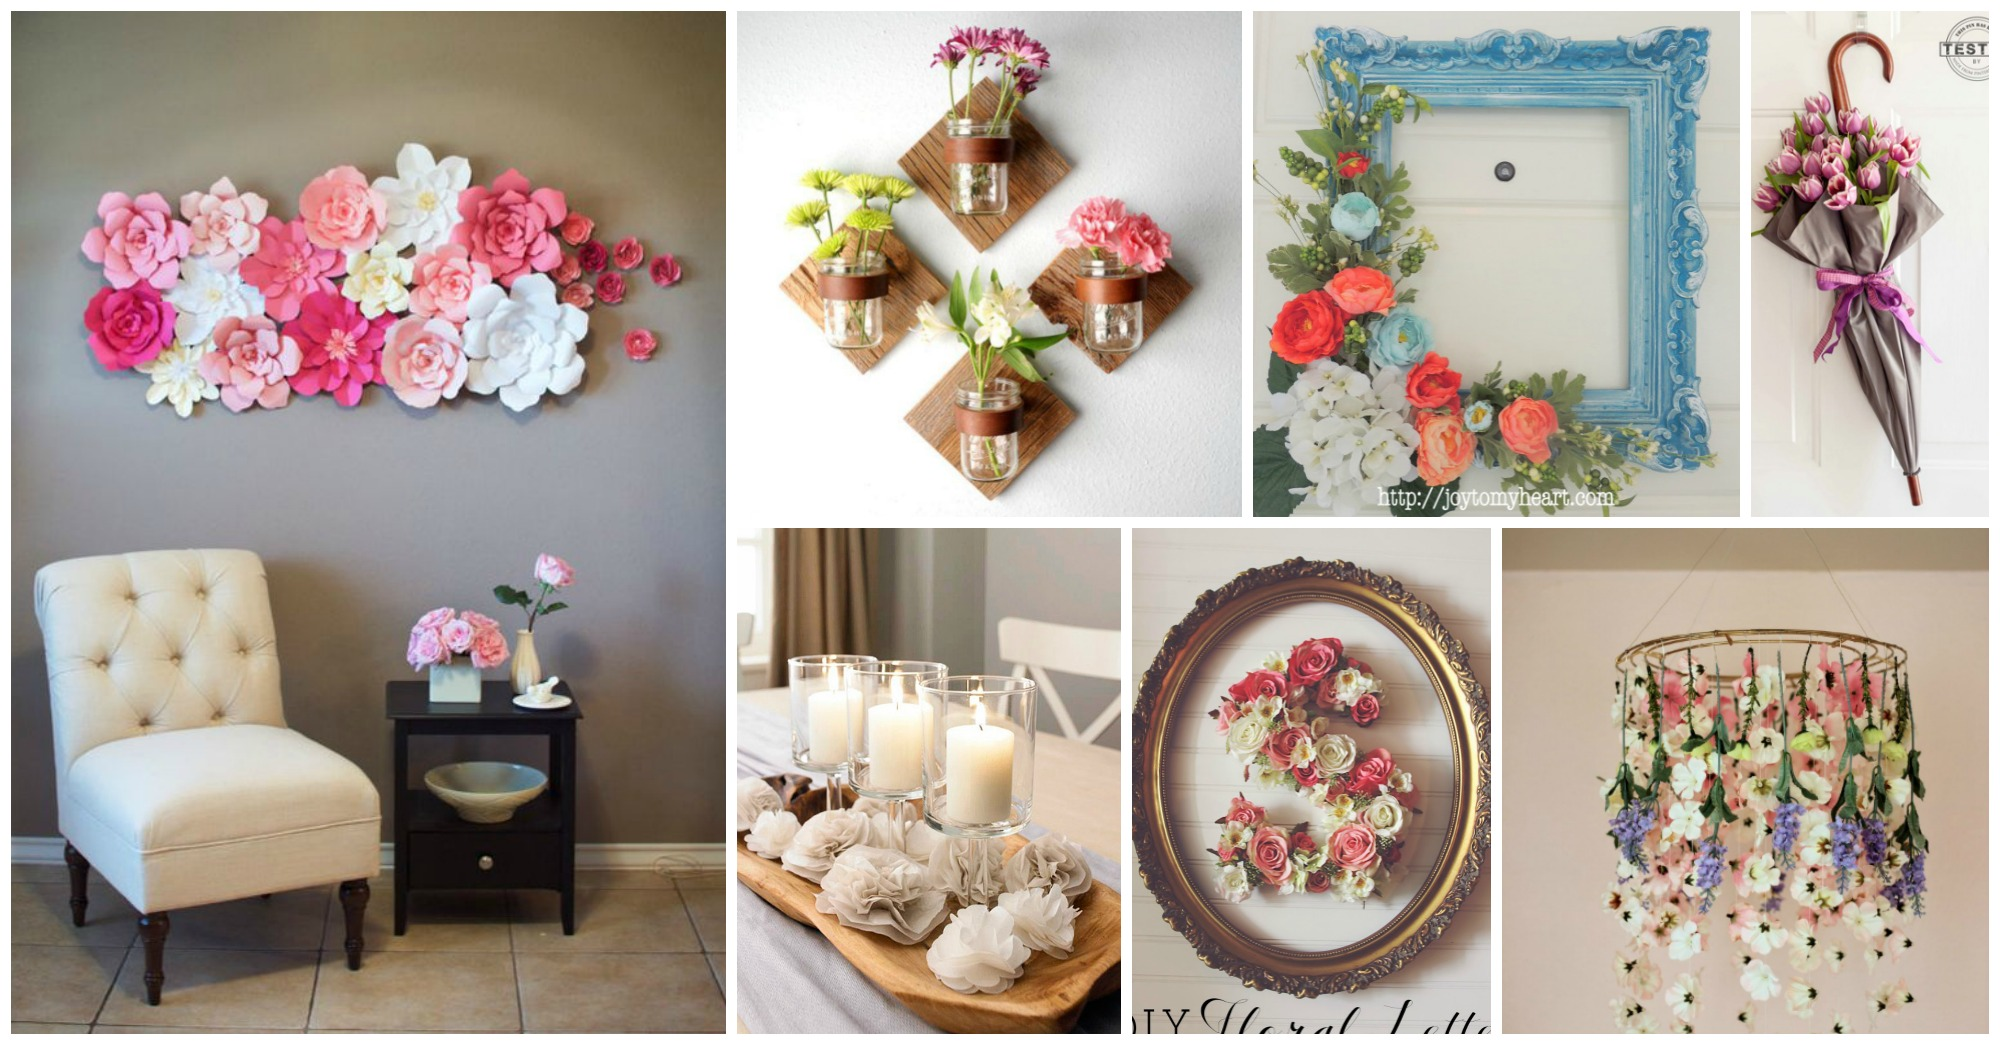 10 Amazing DIY Flower Projects to Make Your Home More Cheerful